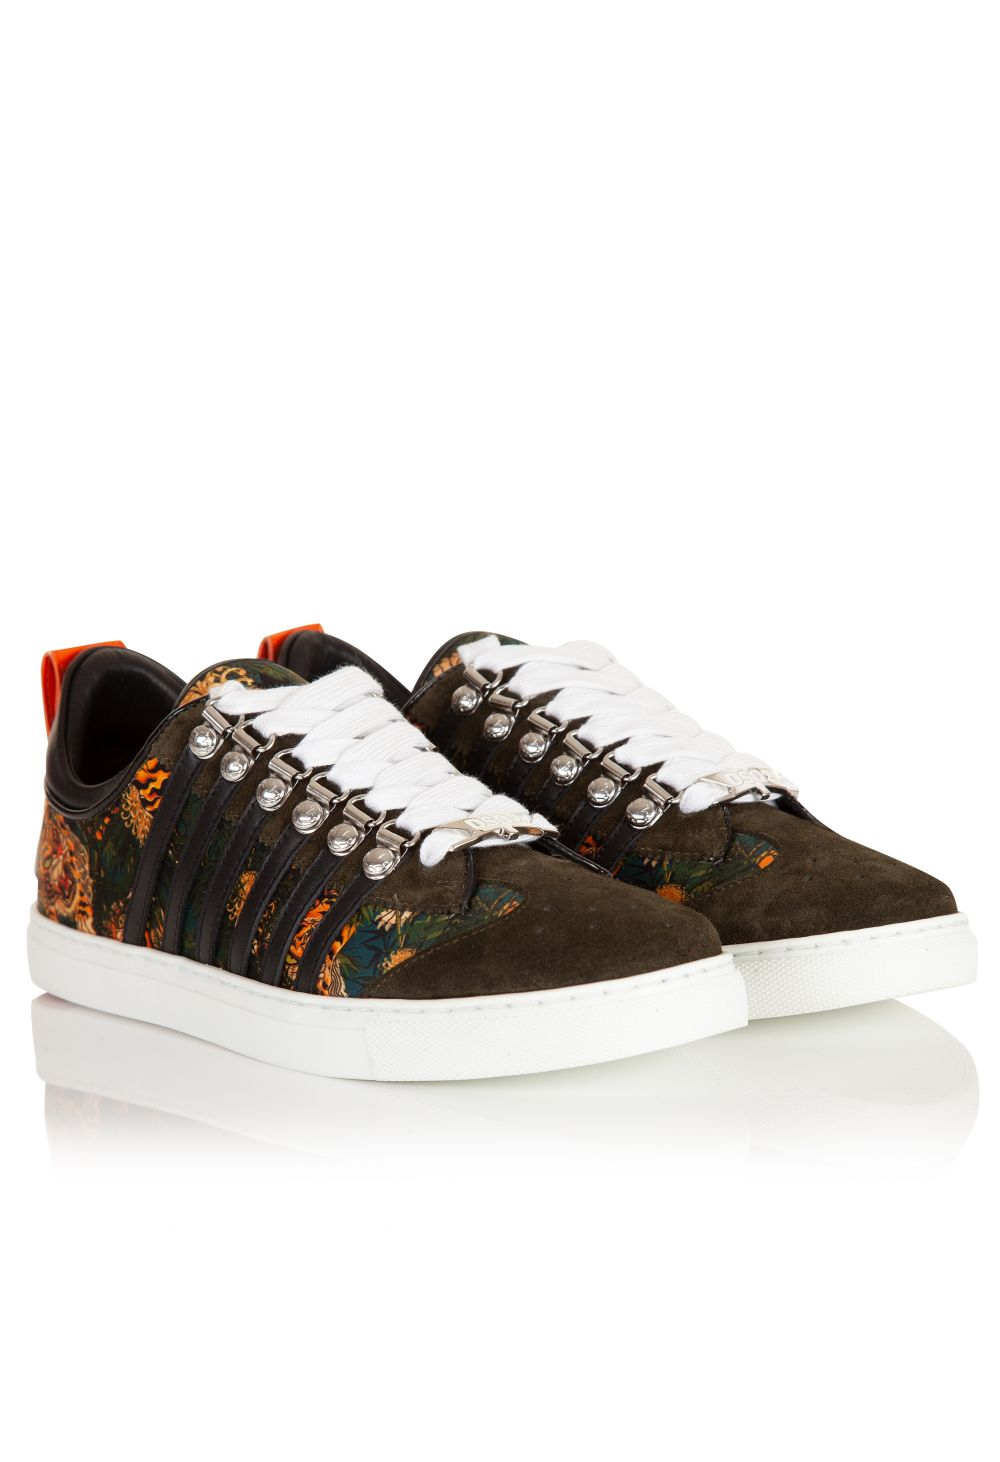 DSquared2 Tiger Pattern Low Top Sneakers